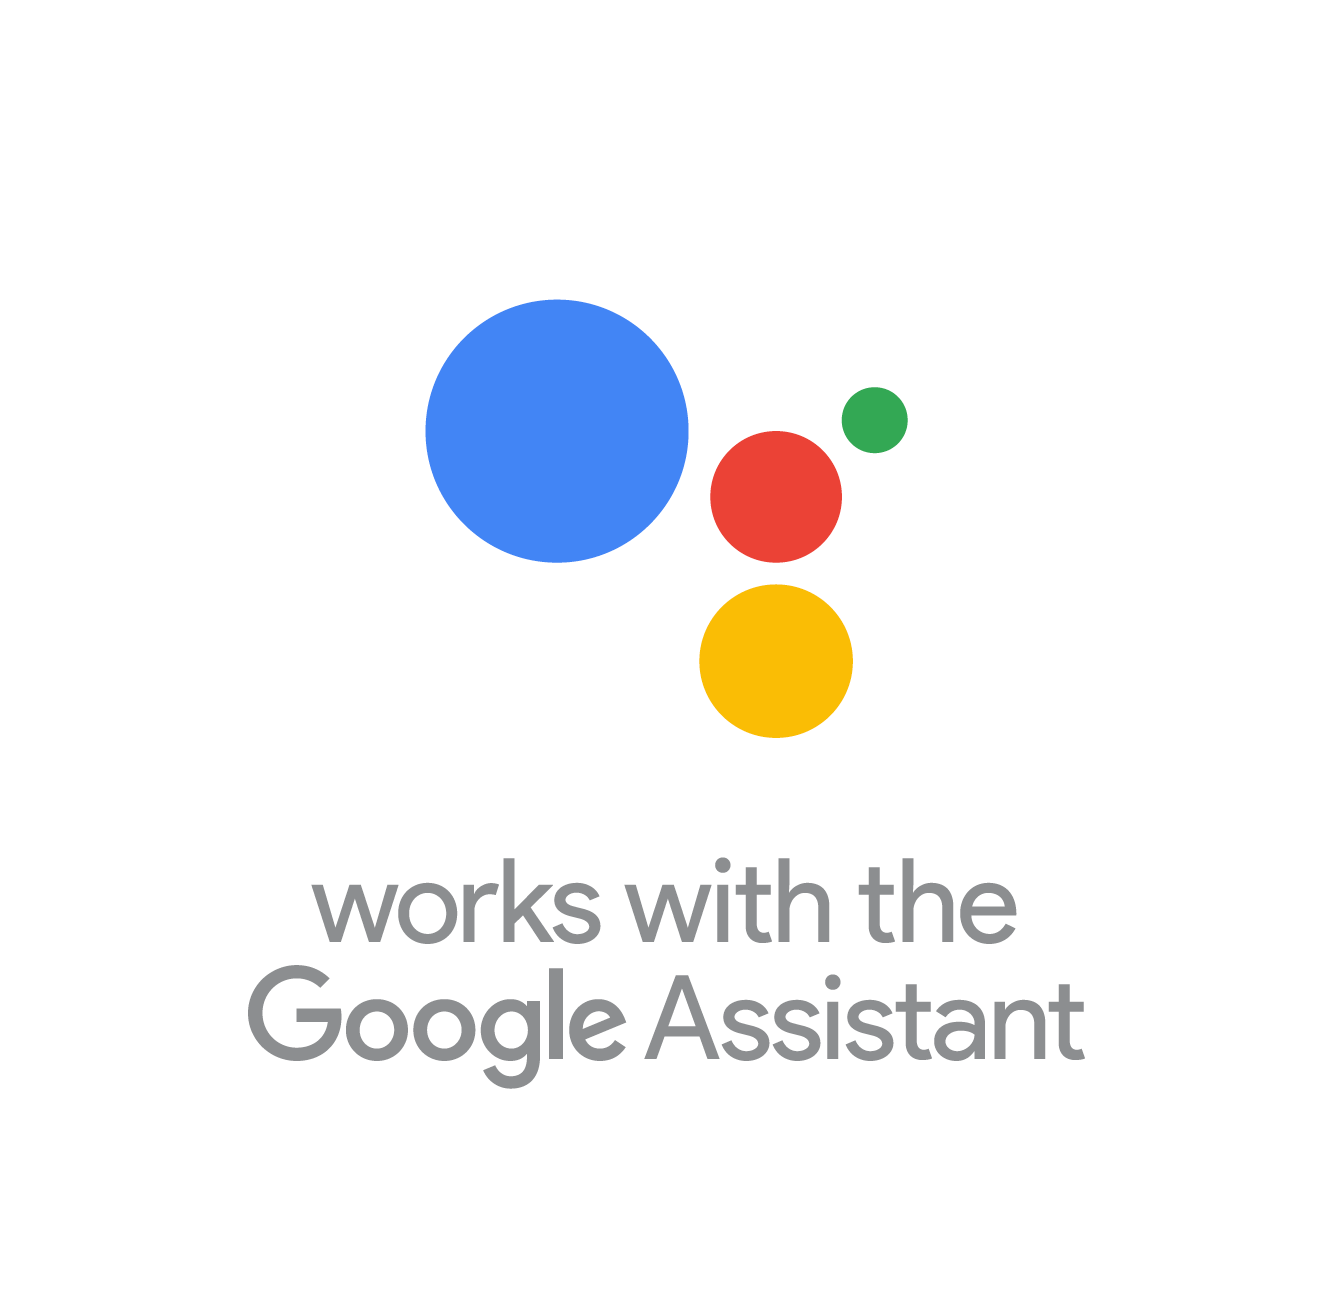 ECHO Robotics works with Google Assistant